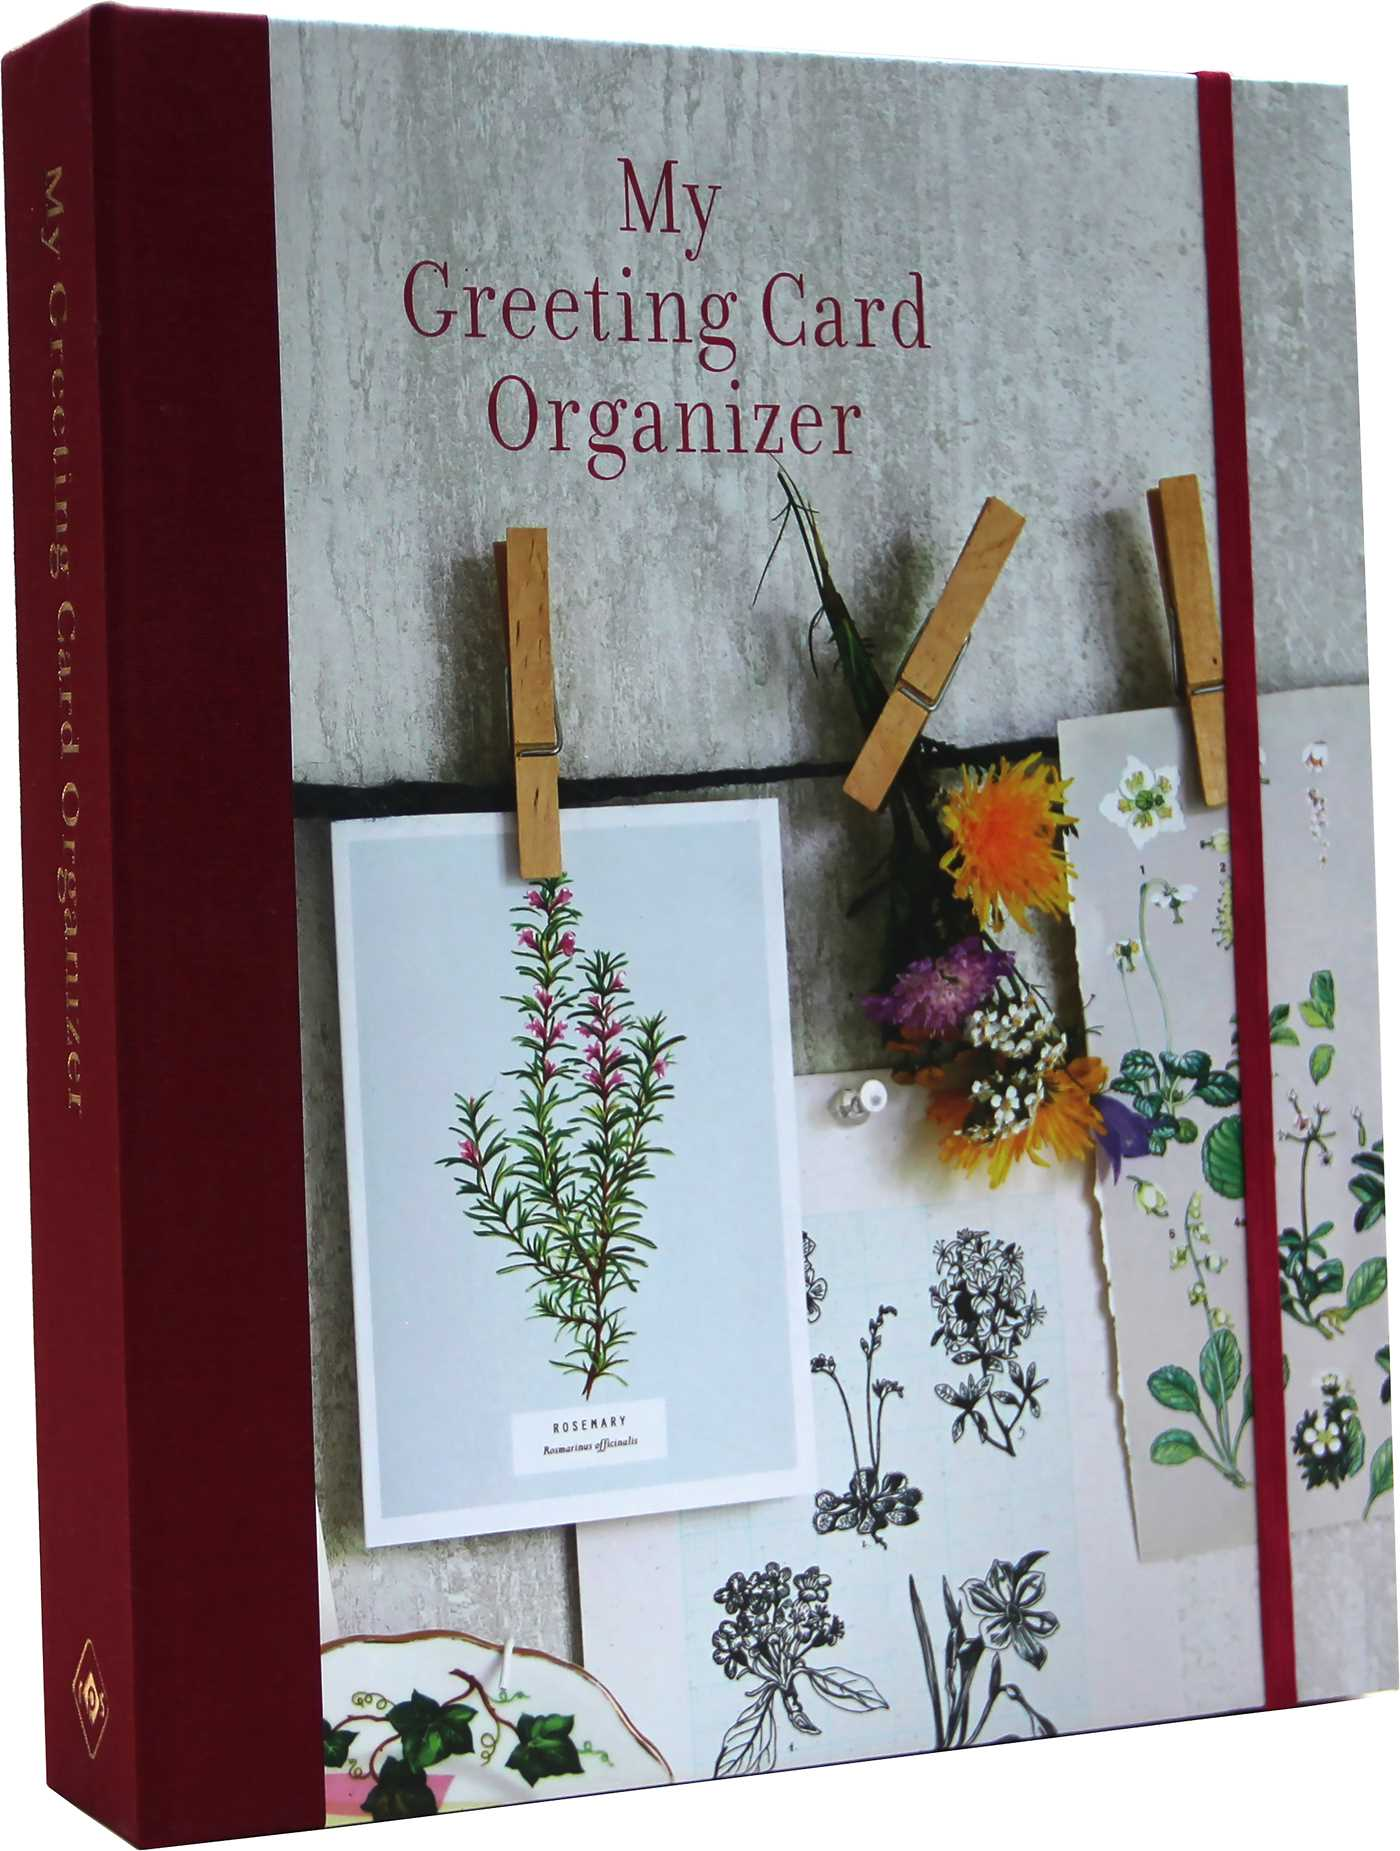 My Greeting Card Organizer Book Summary Video Official